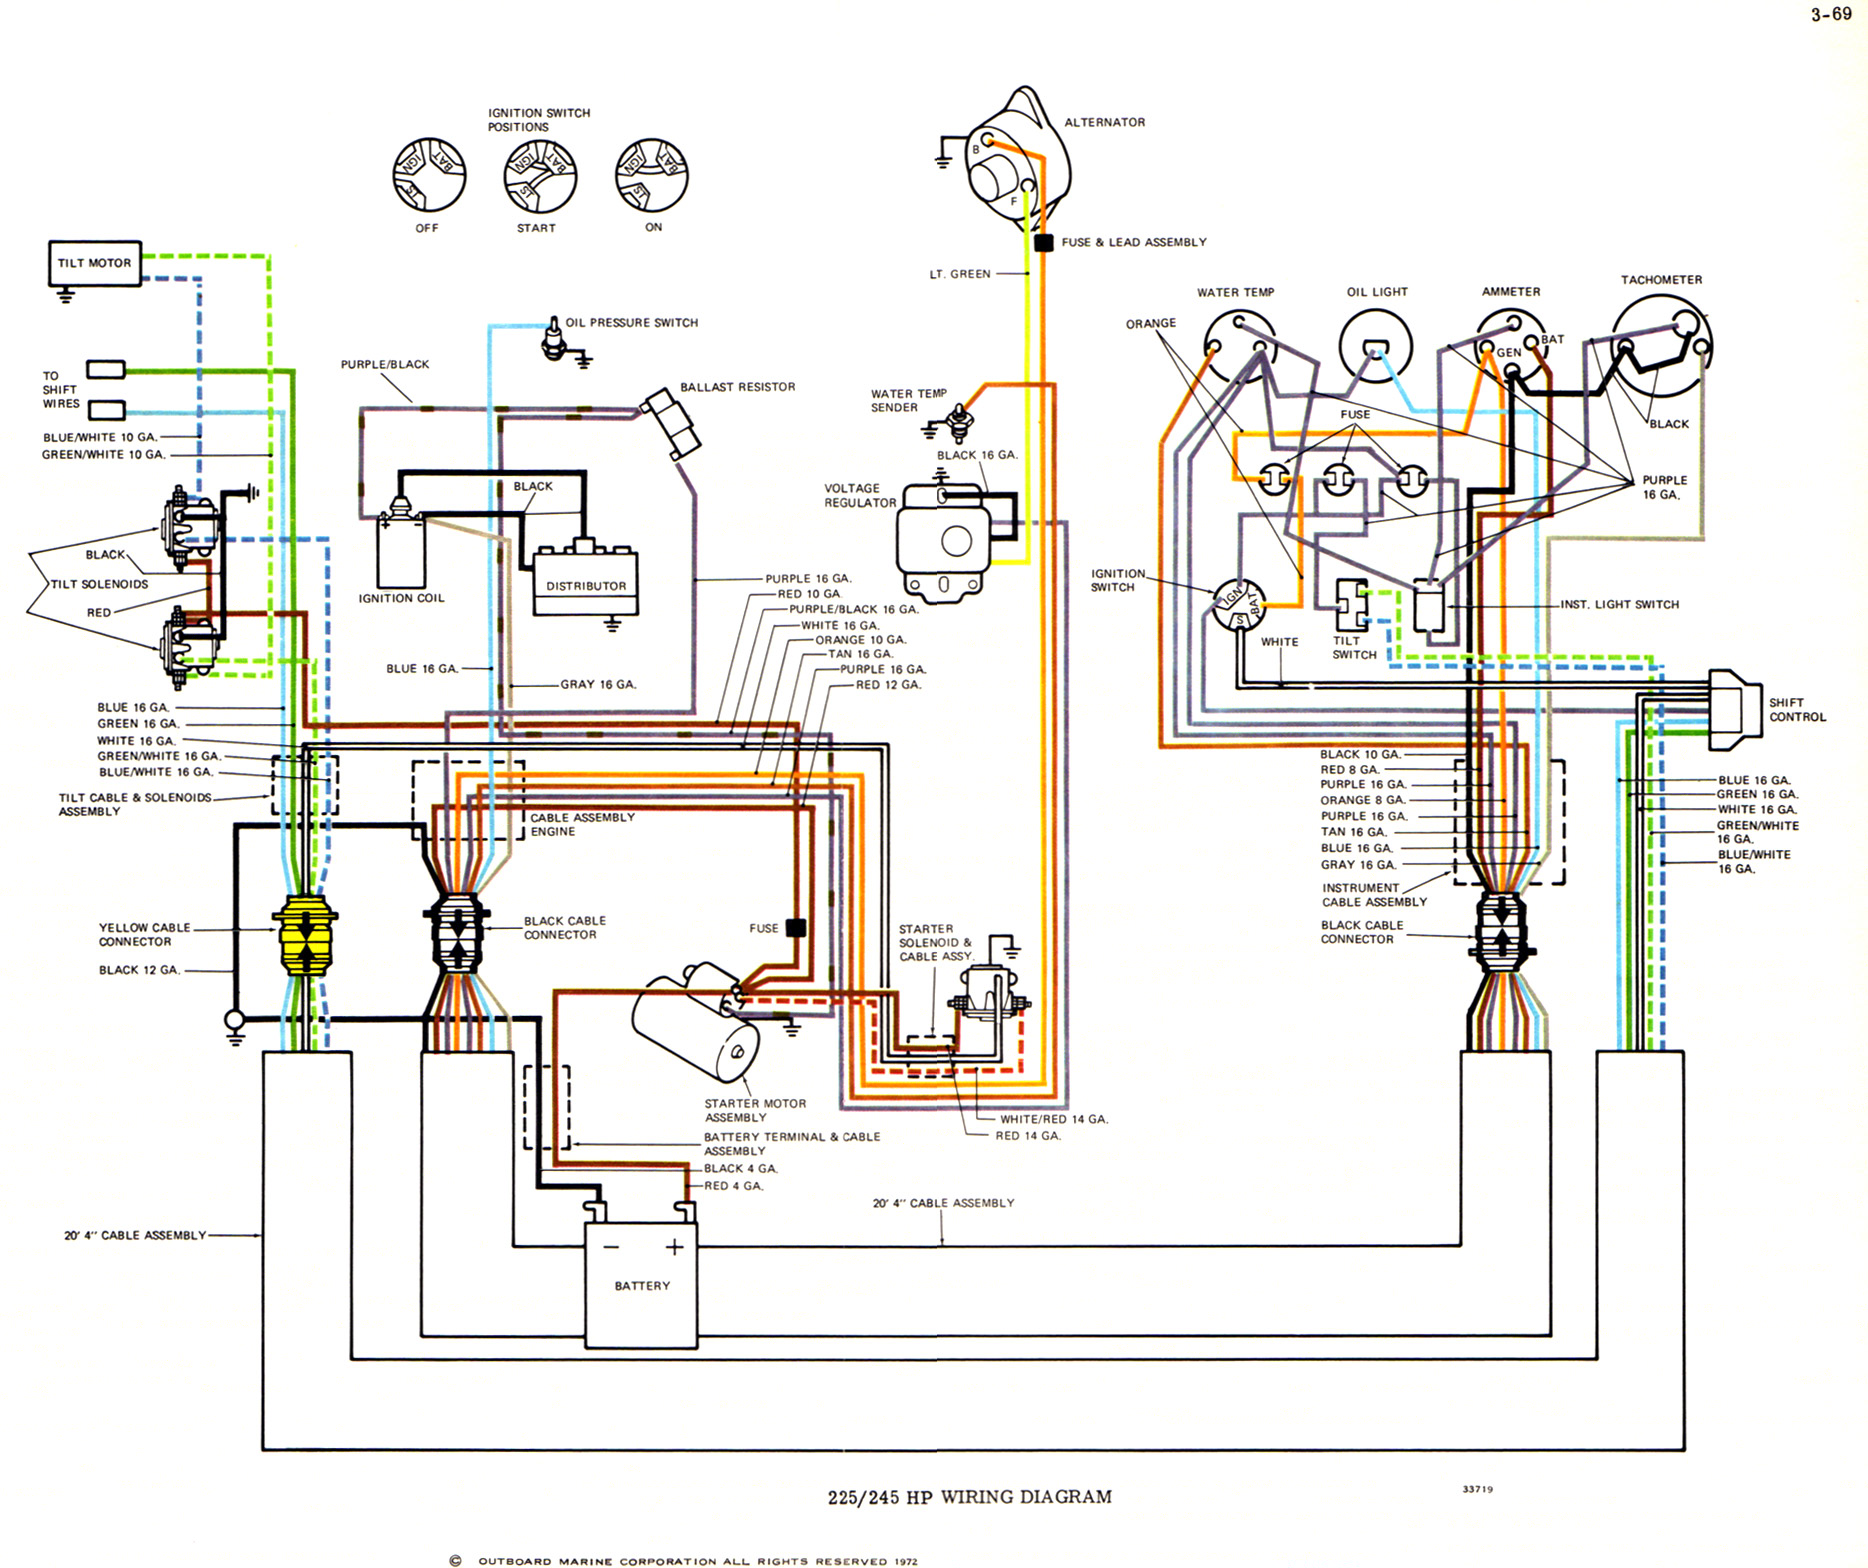 120 hp evinrude wiring diagram detailed schematics diagram rh jvpacks com  1975 johnson 115 outboard wiring